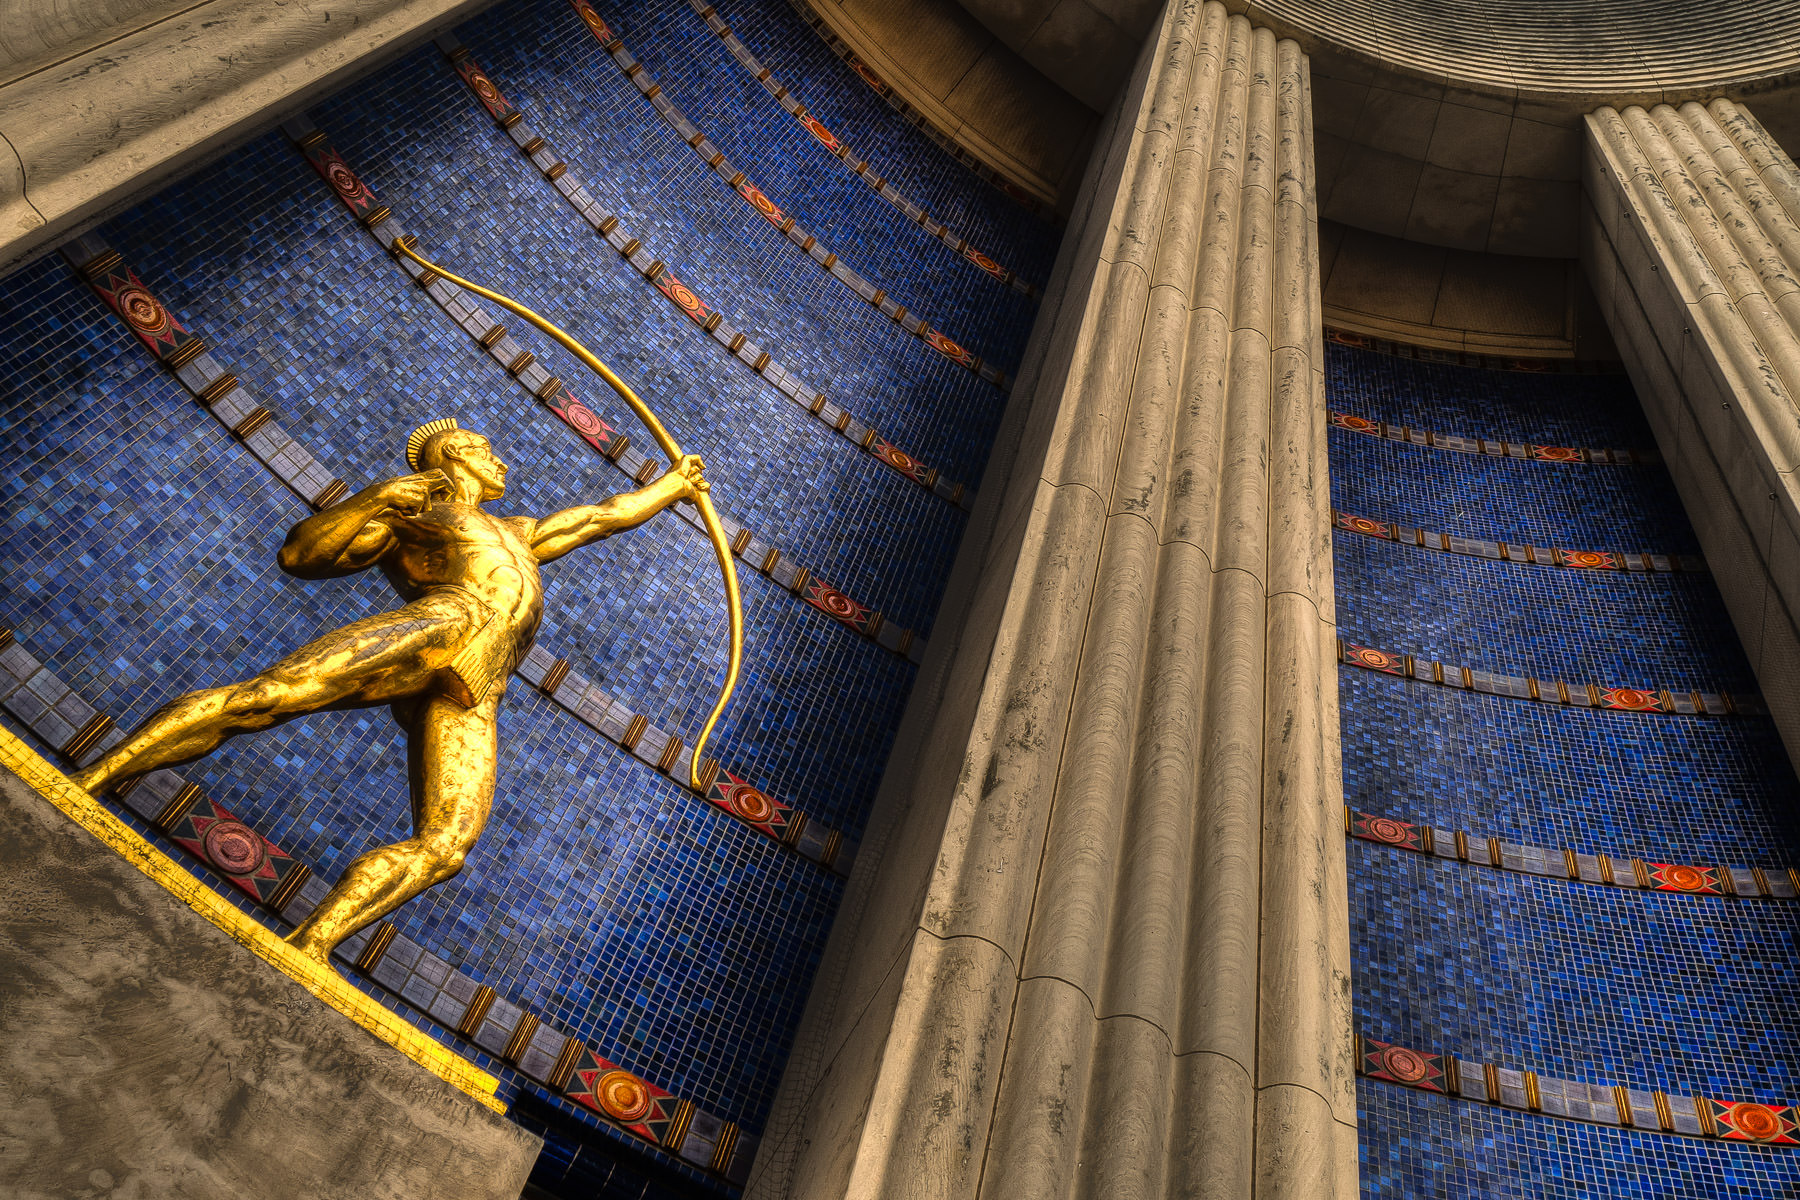 Sculptor Allie Victoria Tennant's The Tejas Warrior guards the entrance to the Hall of State at Fair Park, Dallas.